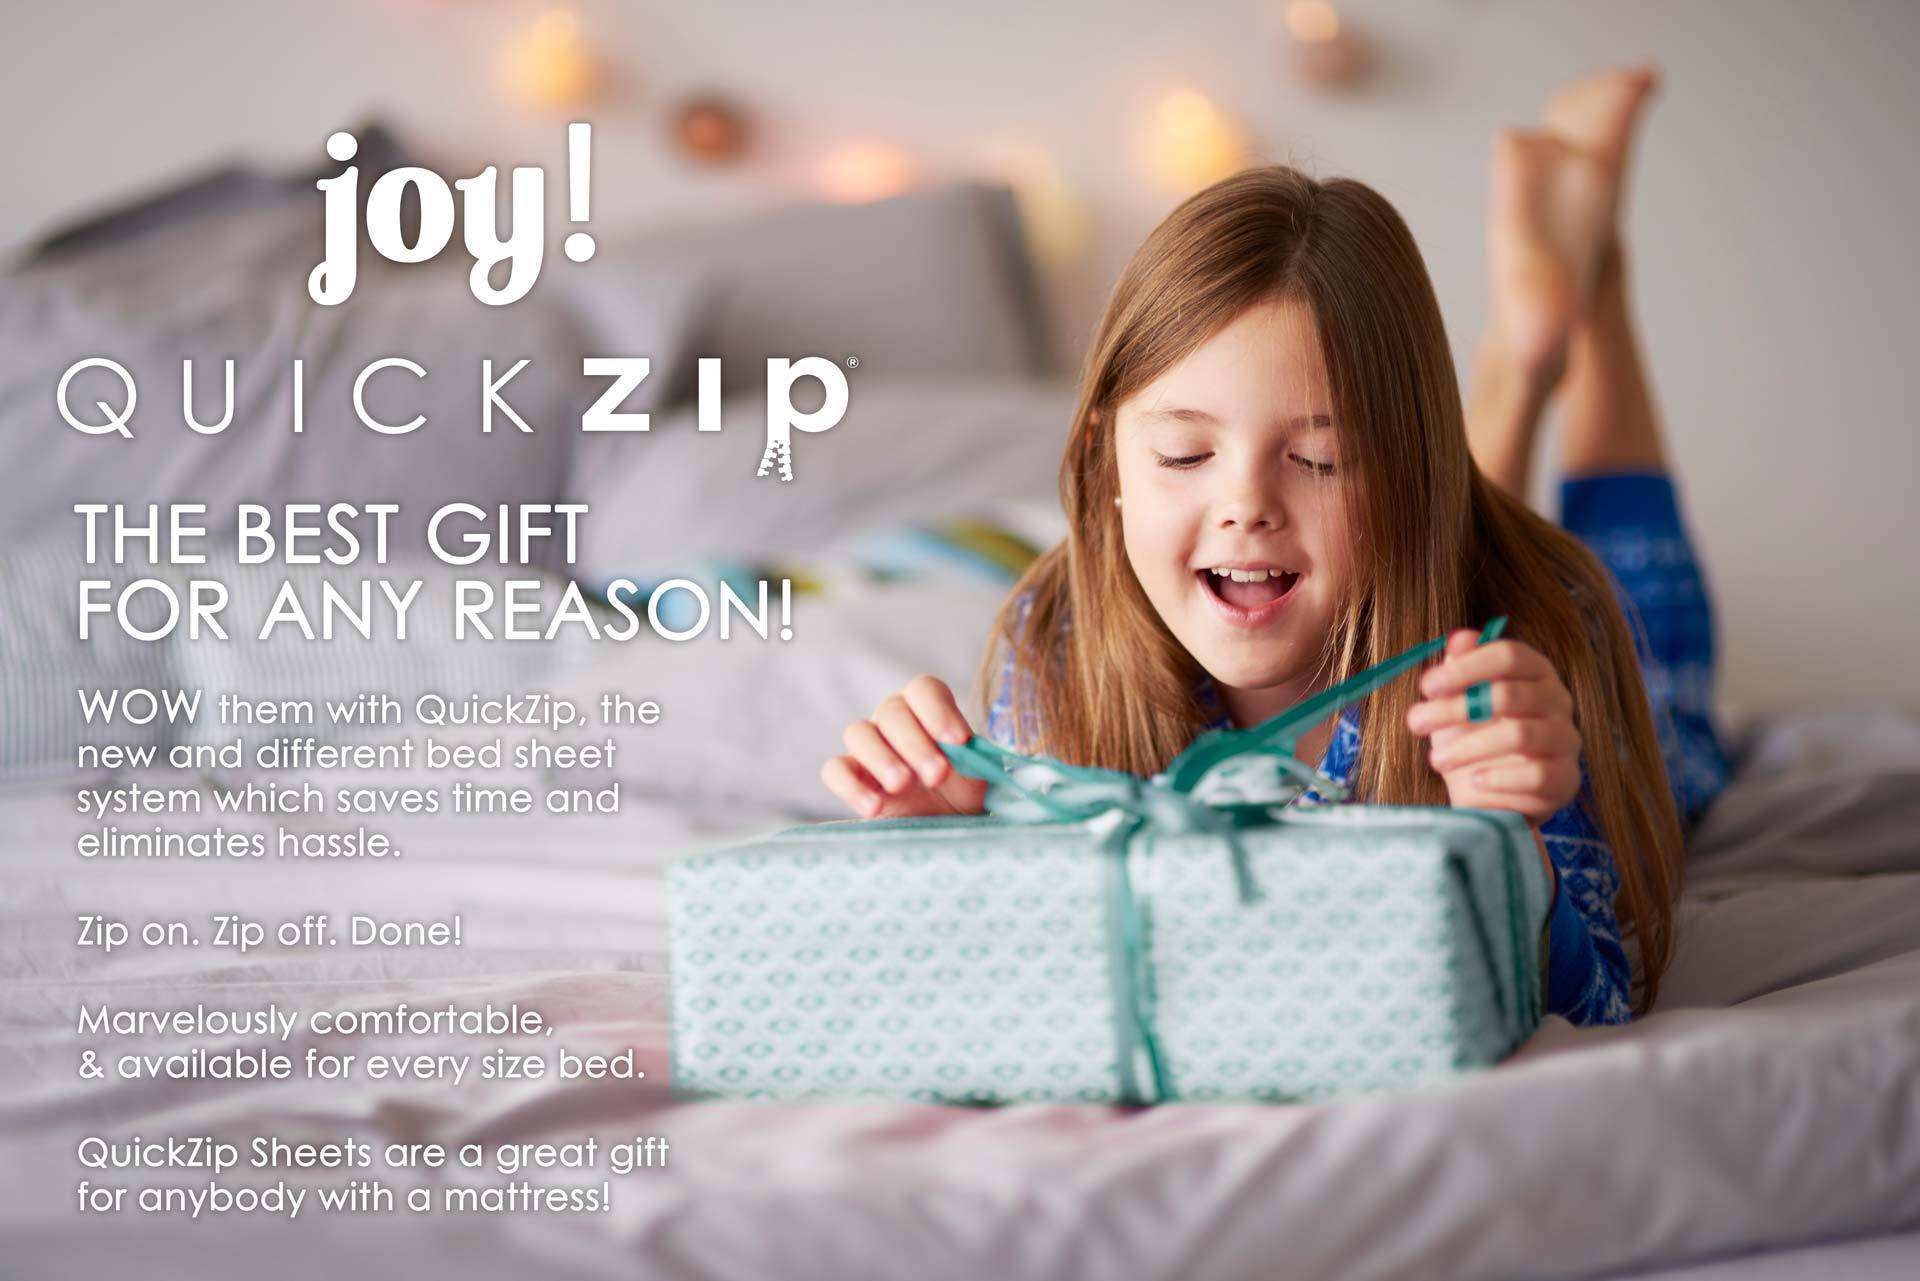 Free gift wrapping on all orders for a limited time.